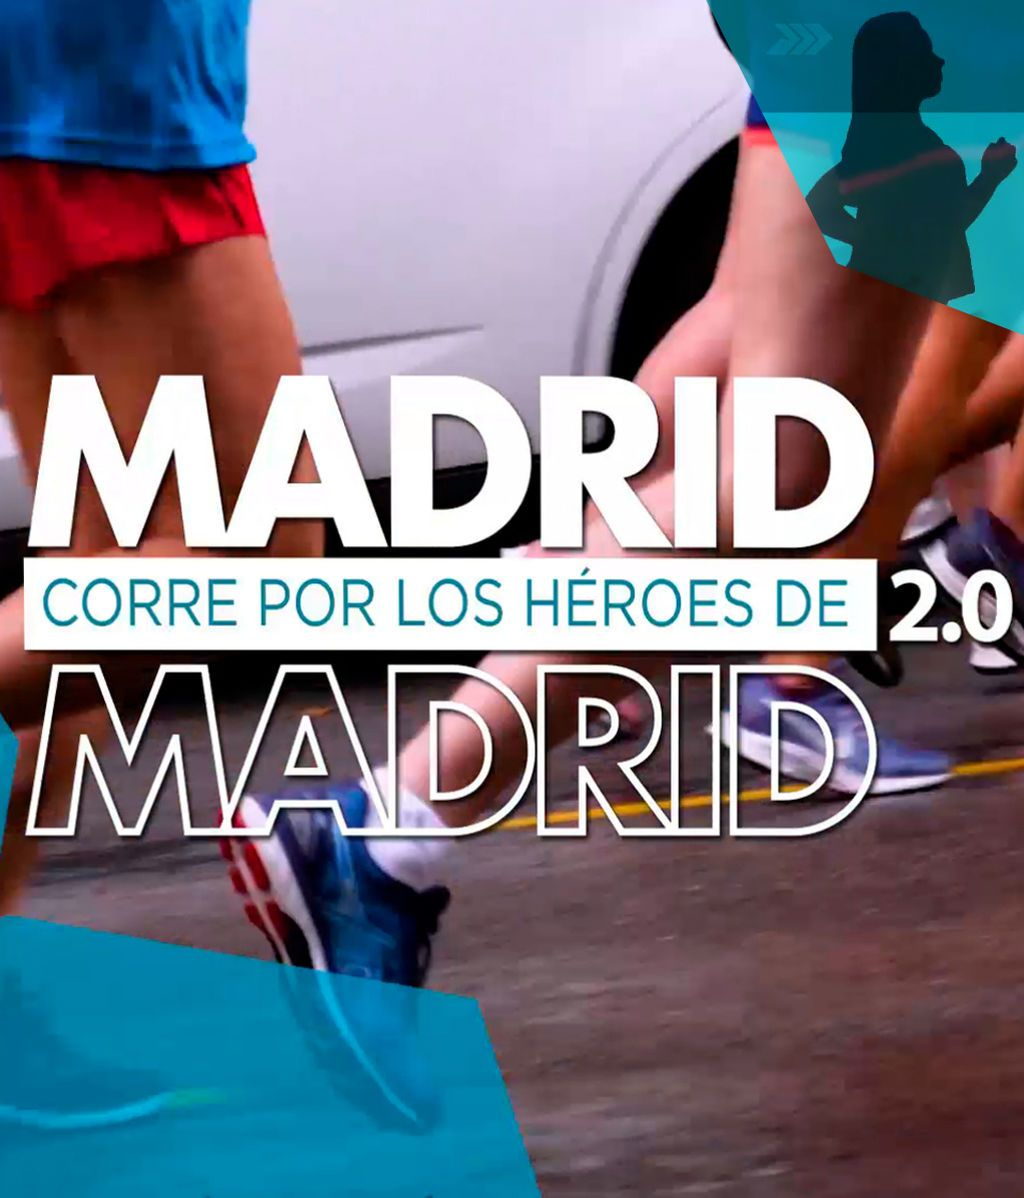 MADRID CORRE POR MADRID - MARATON